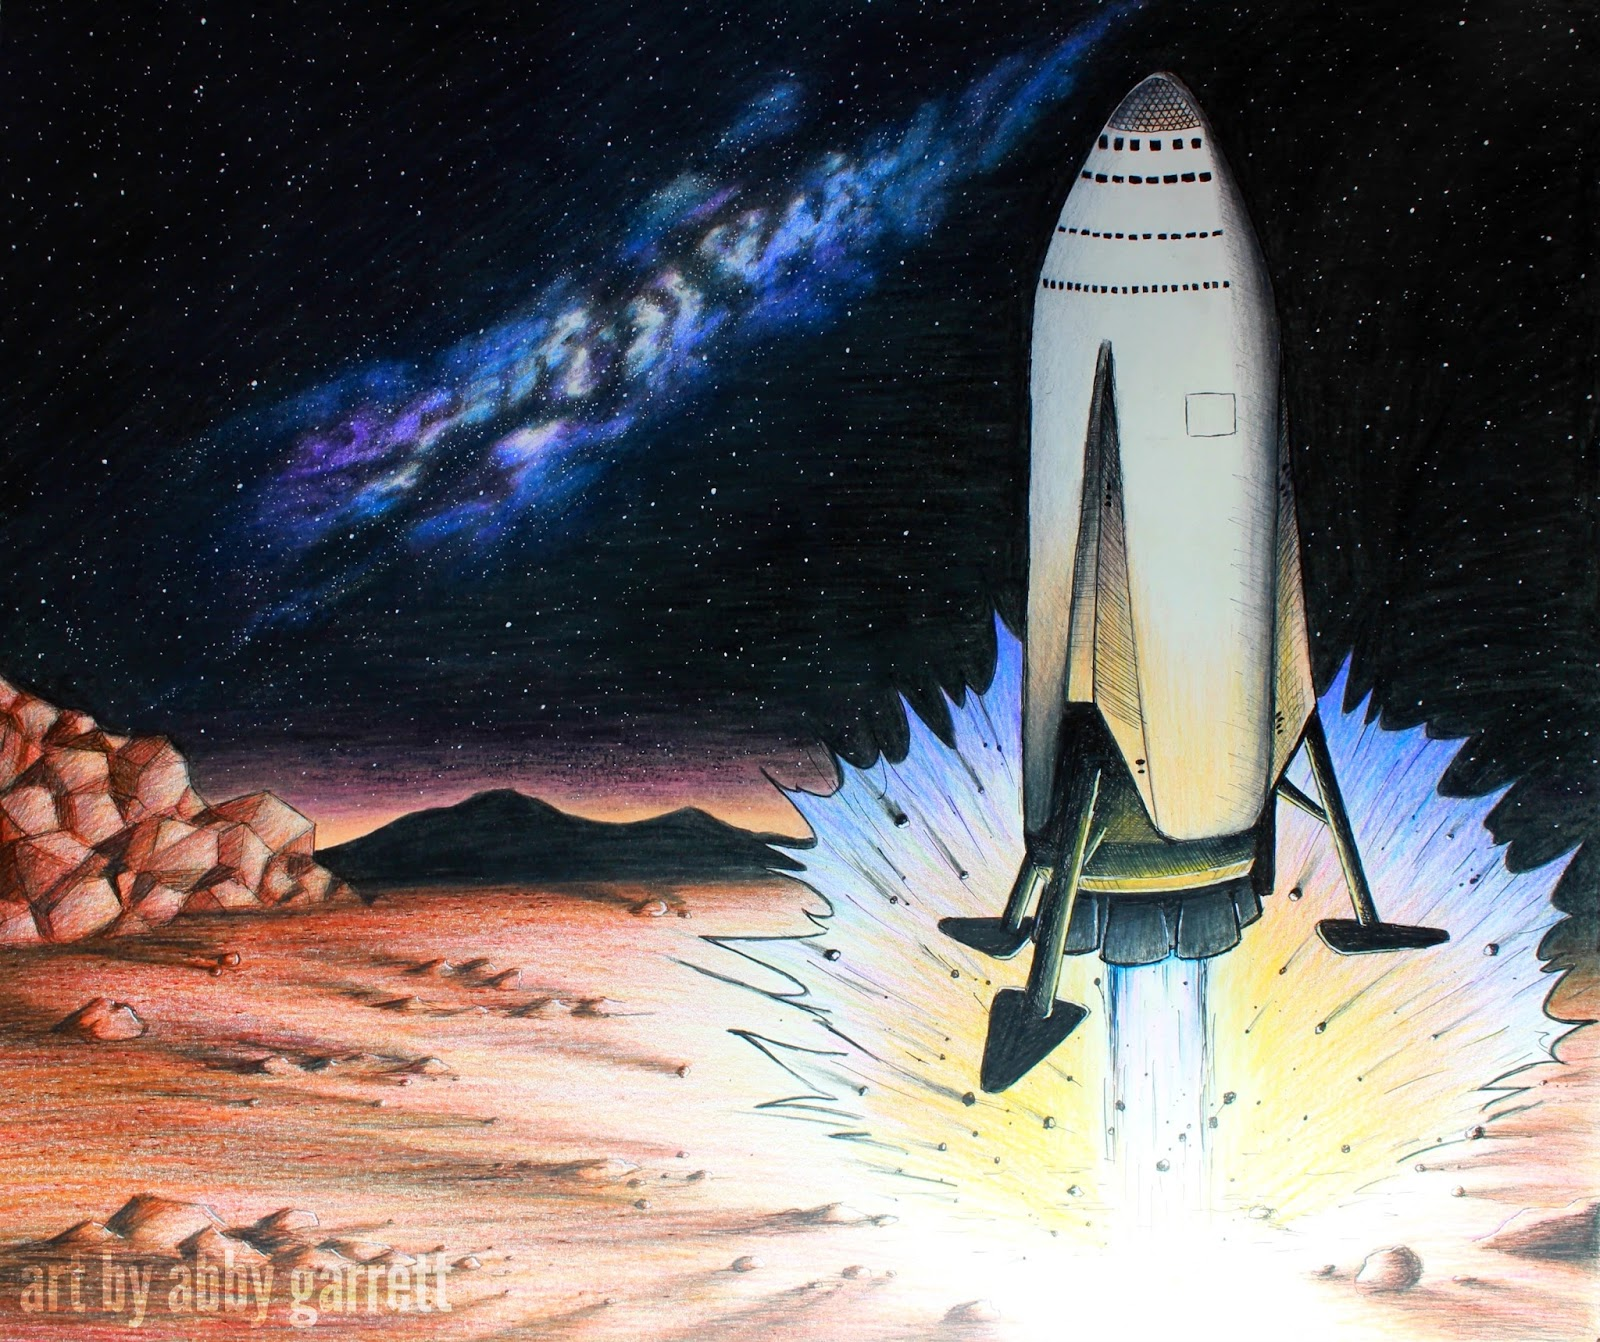 Drawing of SpaceX ITS spaceship landing on Mars by Abby Garrett